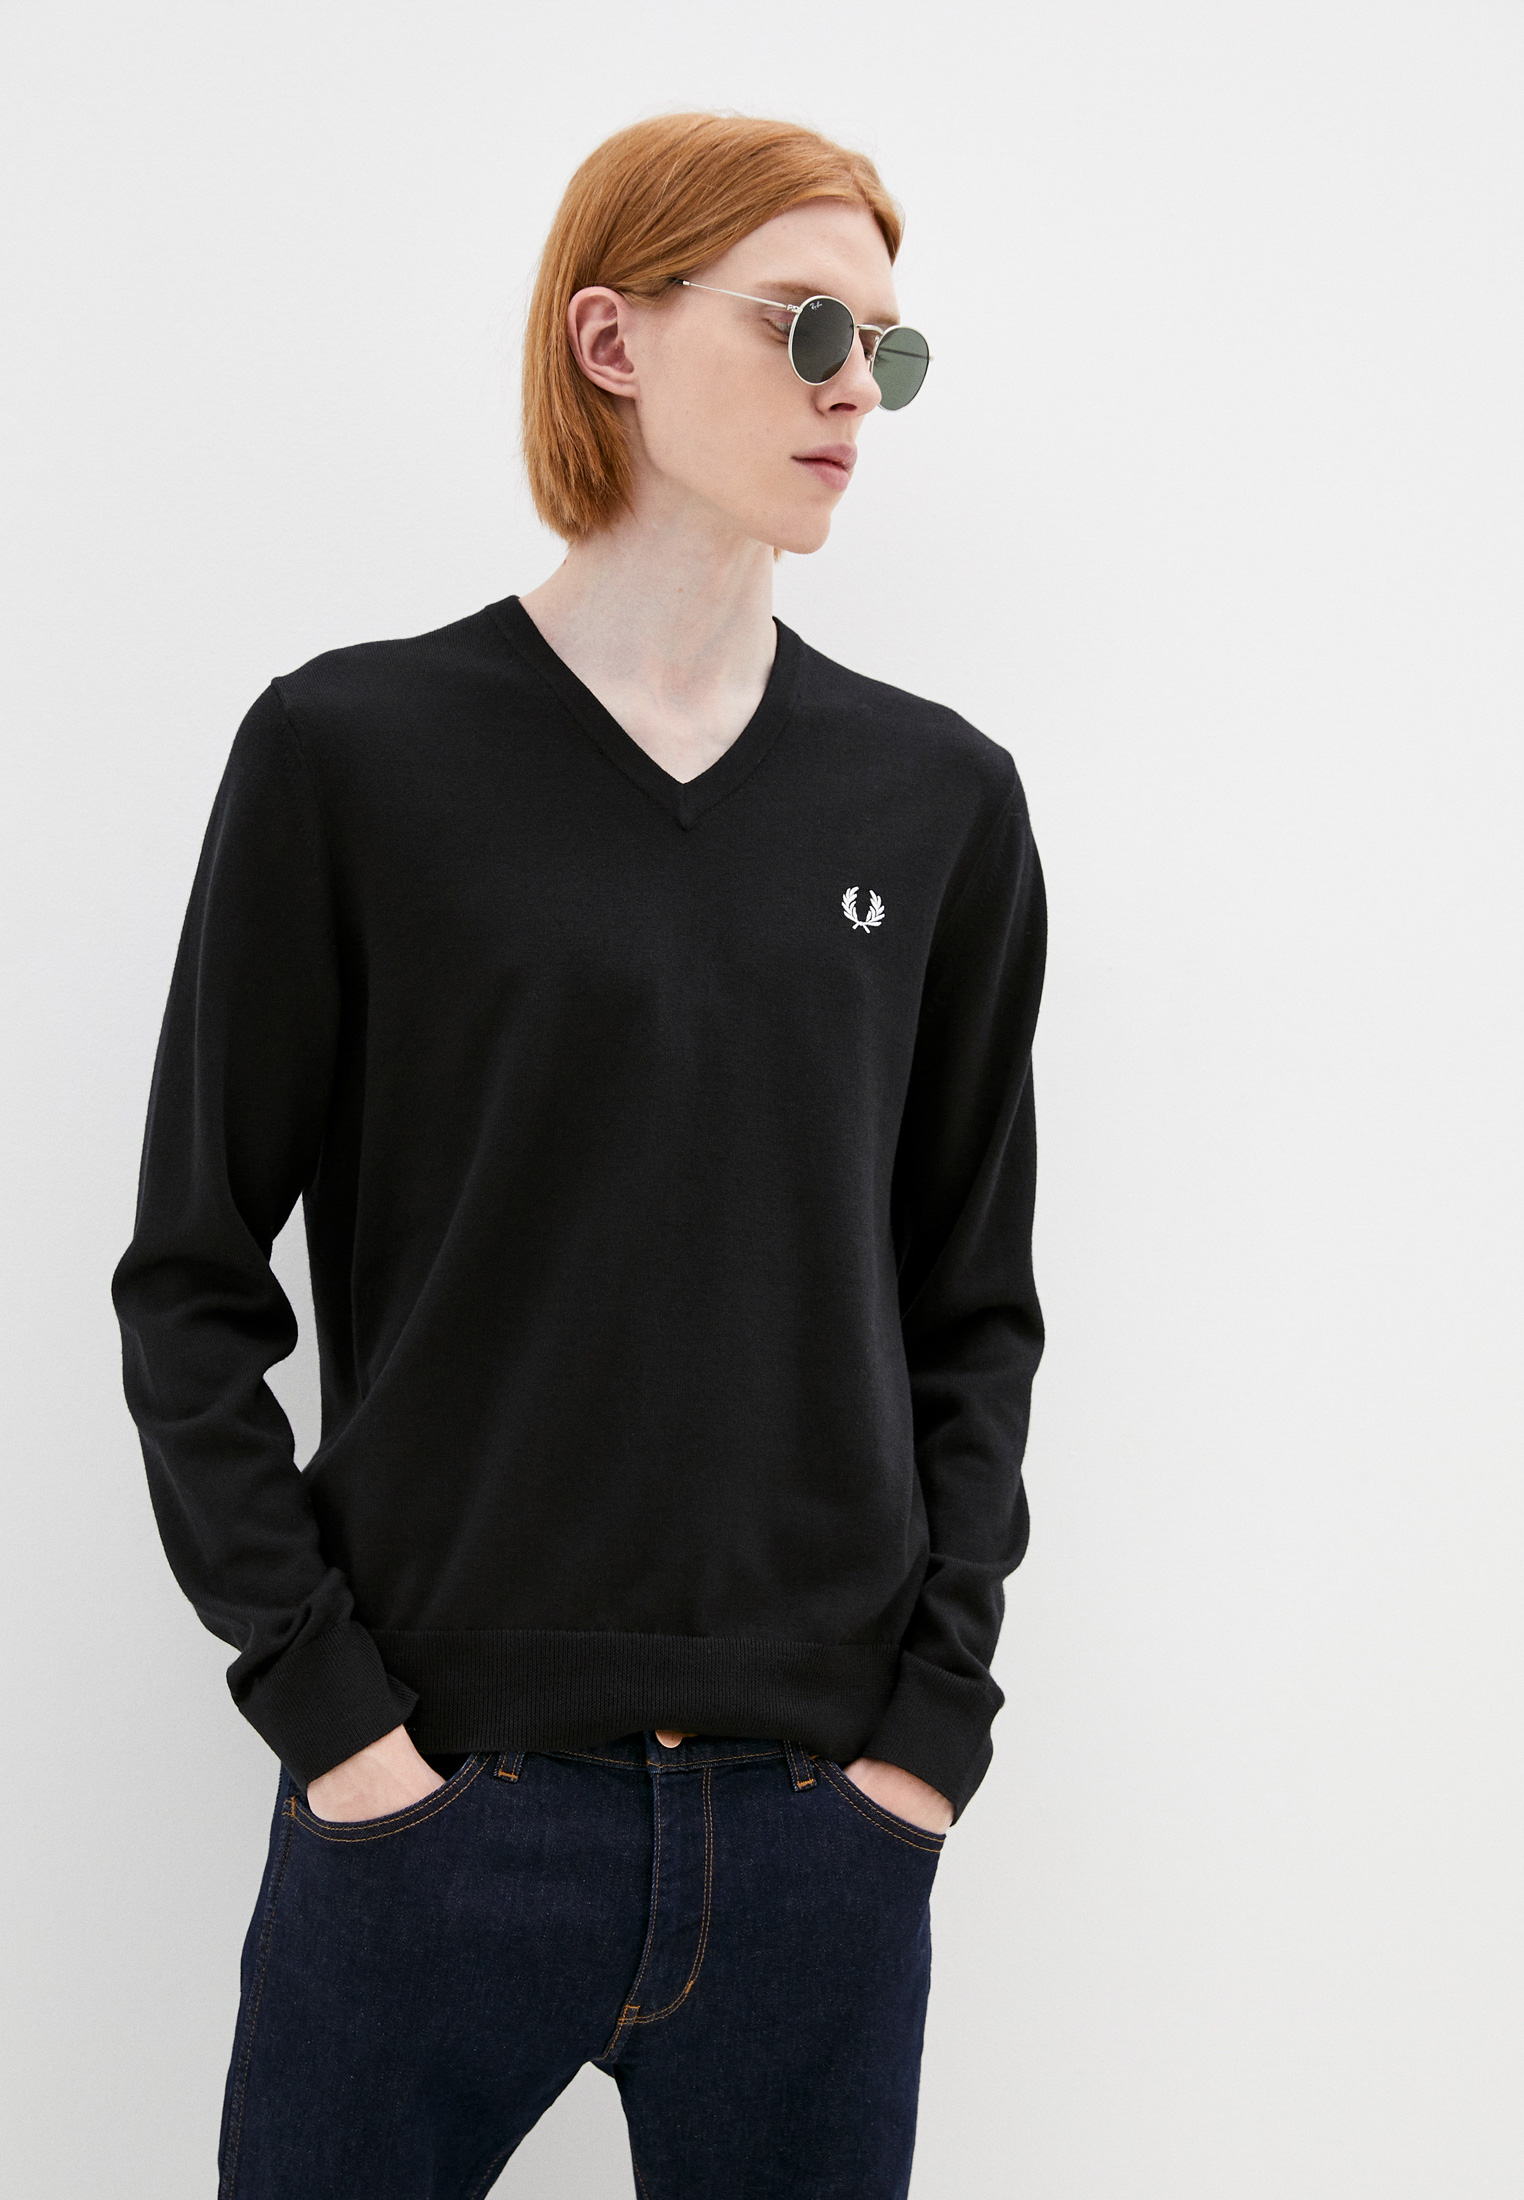 Пуловер Fred Perry Пуловер Fred Perry